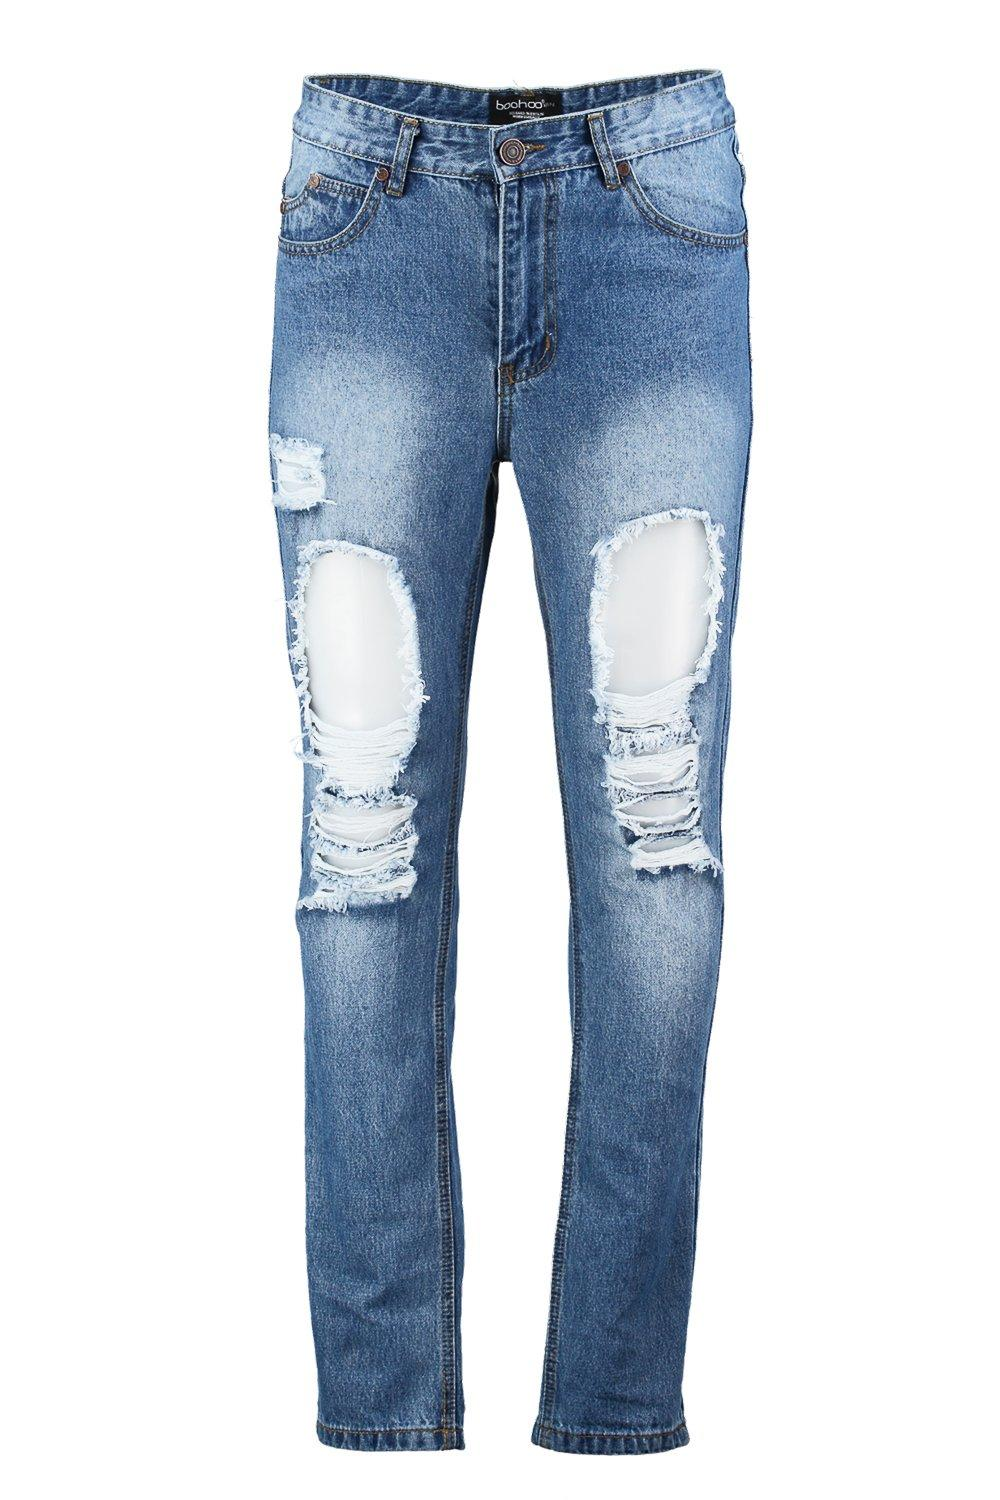 Slim Fit Vintage Wash Ripped Jeans at boohoo.com